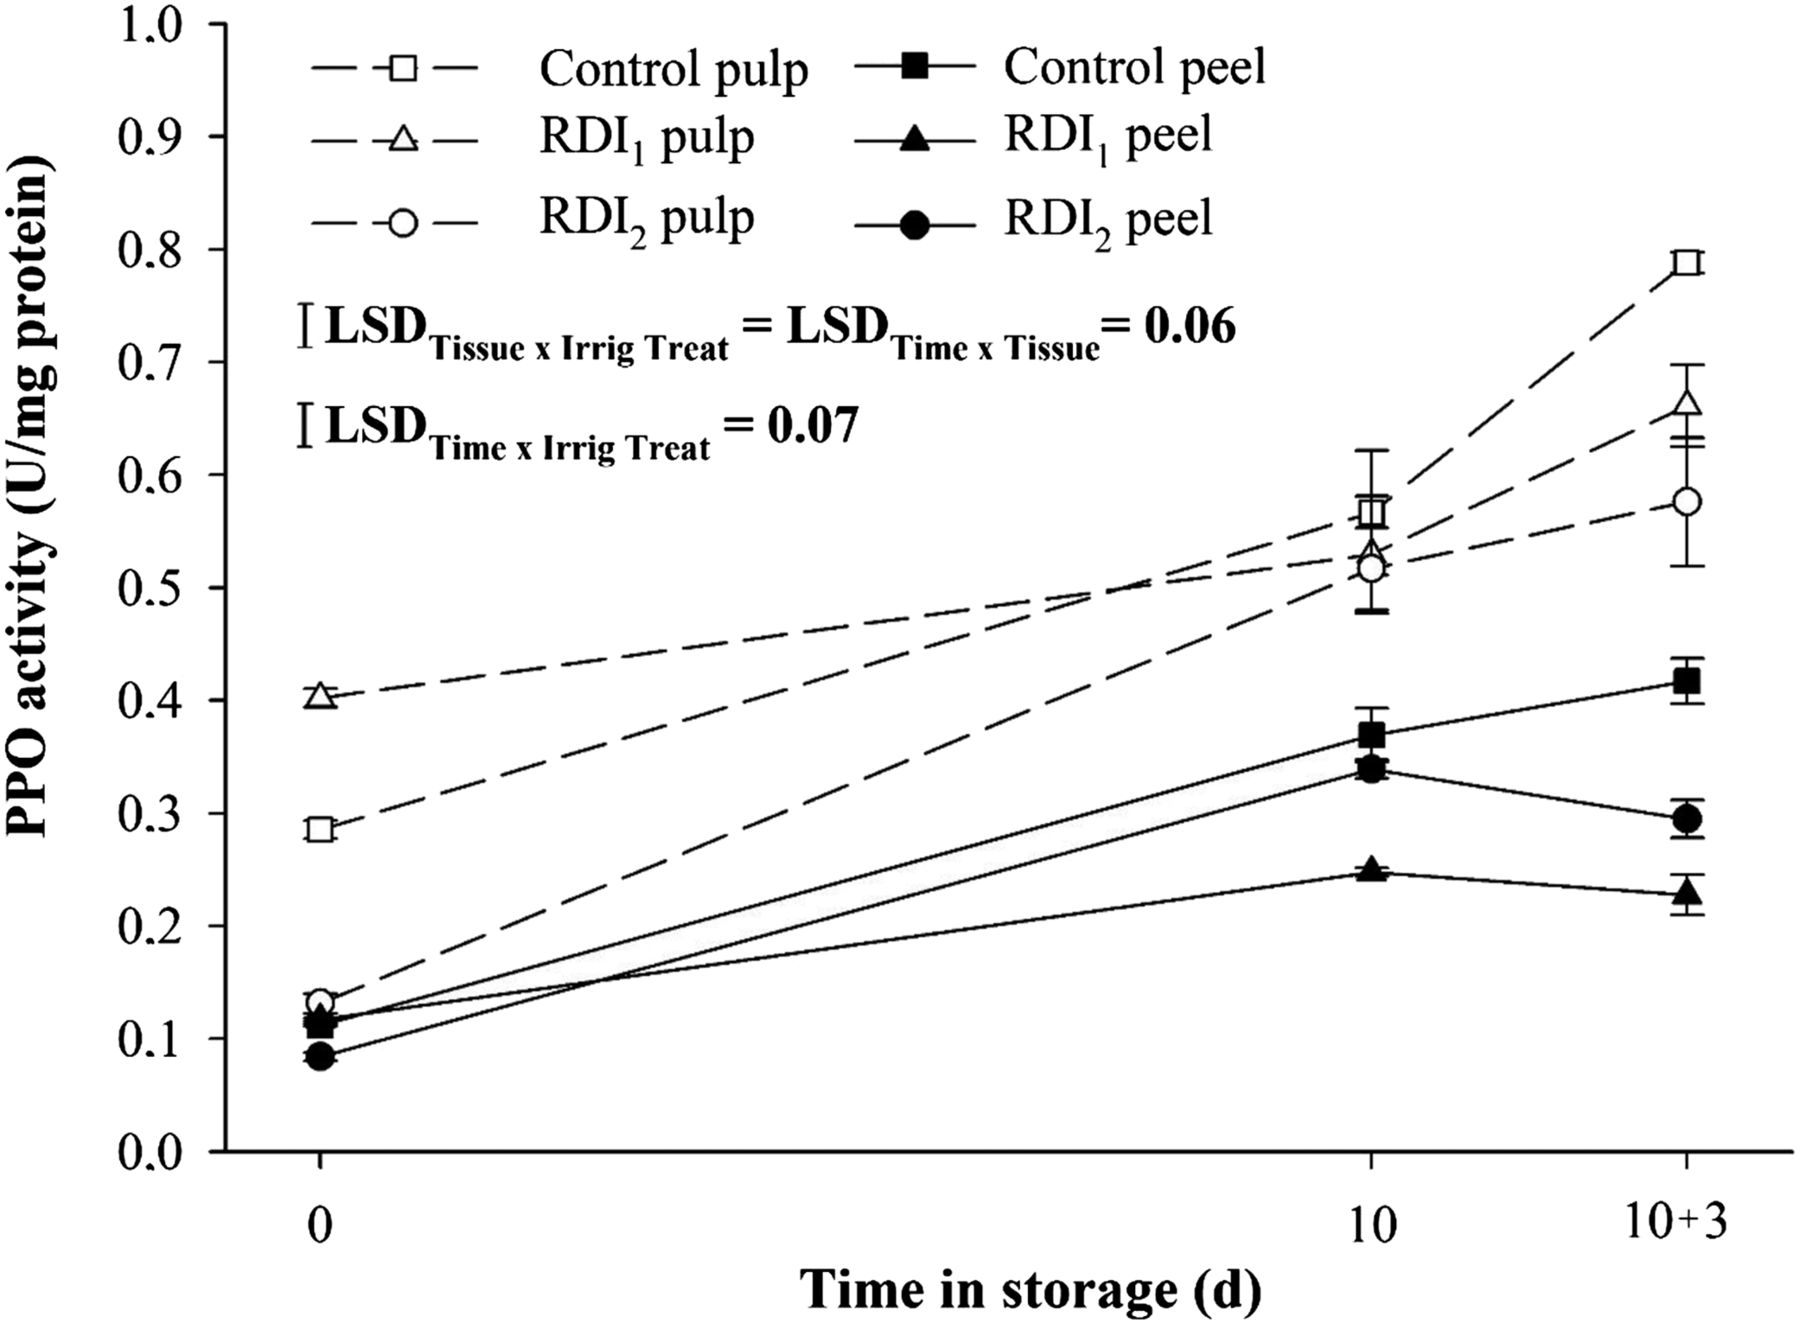 rdi refrigeration unit wiring diagrams individual phenolics and enzymatic changes in response to  individual phenolics and enzymatic